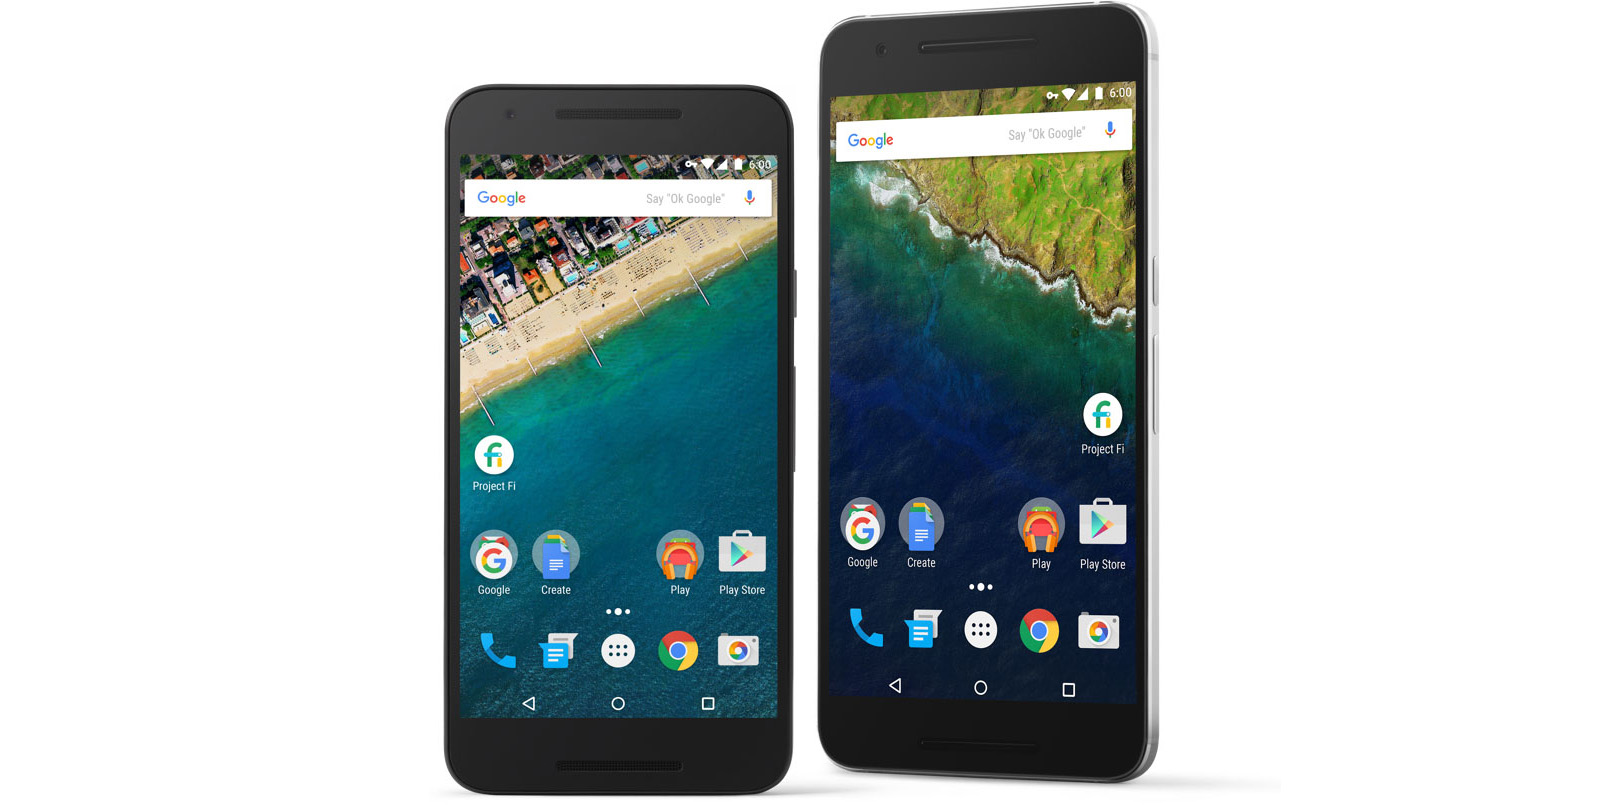 Google is rolling out a data-saving feature to all Nexus phones